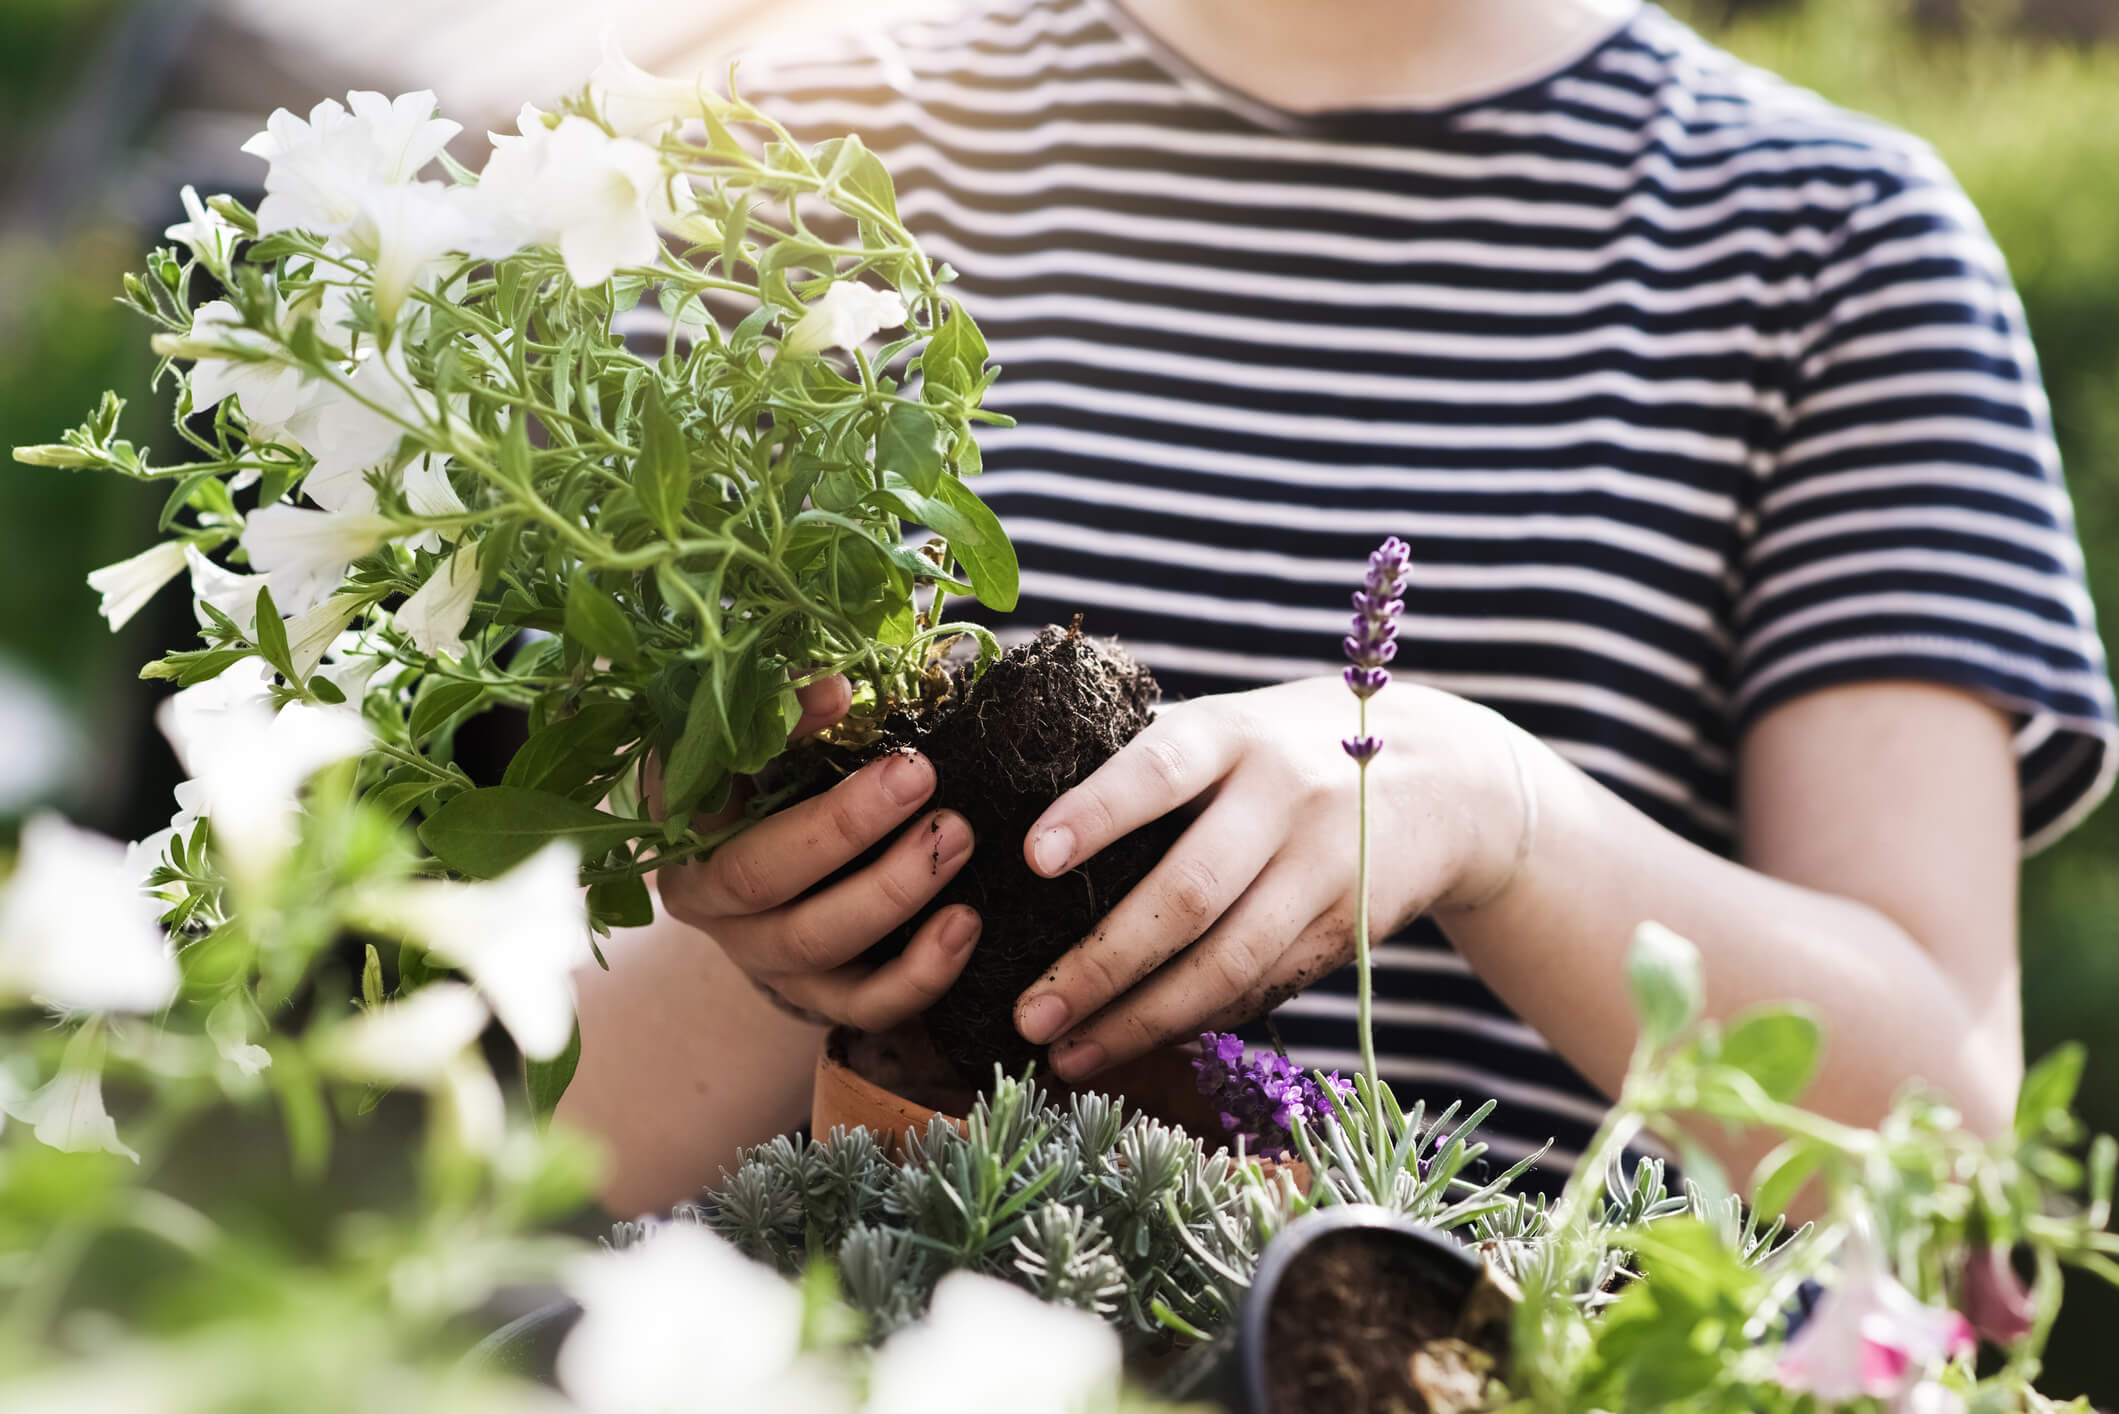 how to care for plants in summer